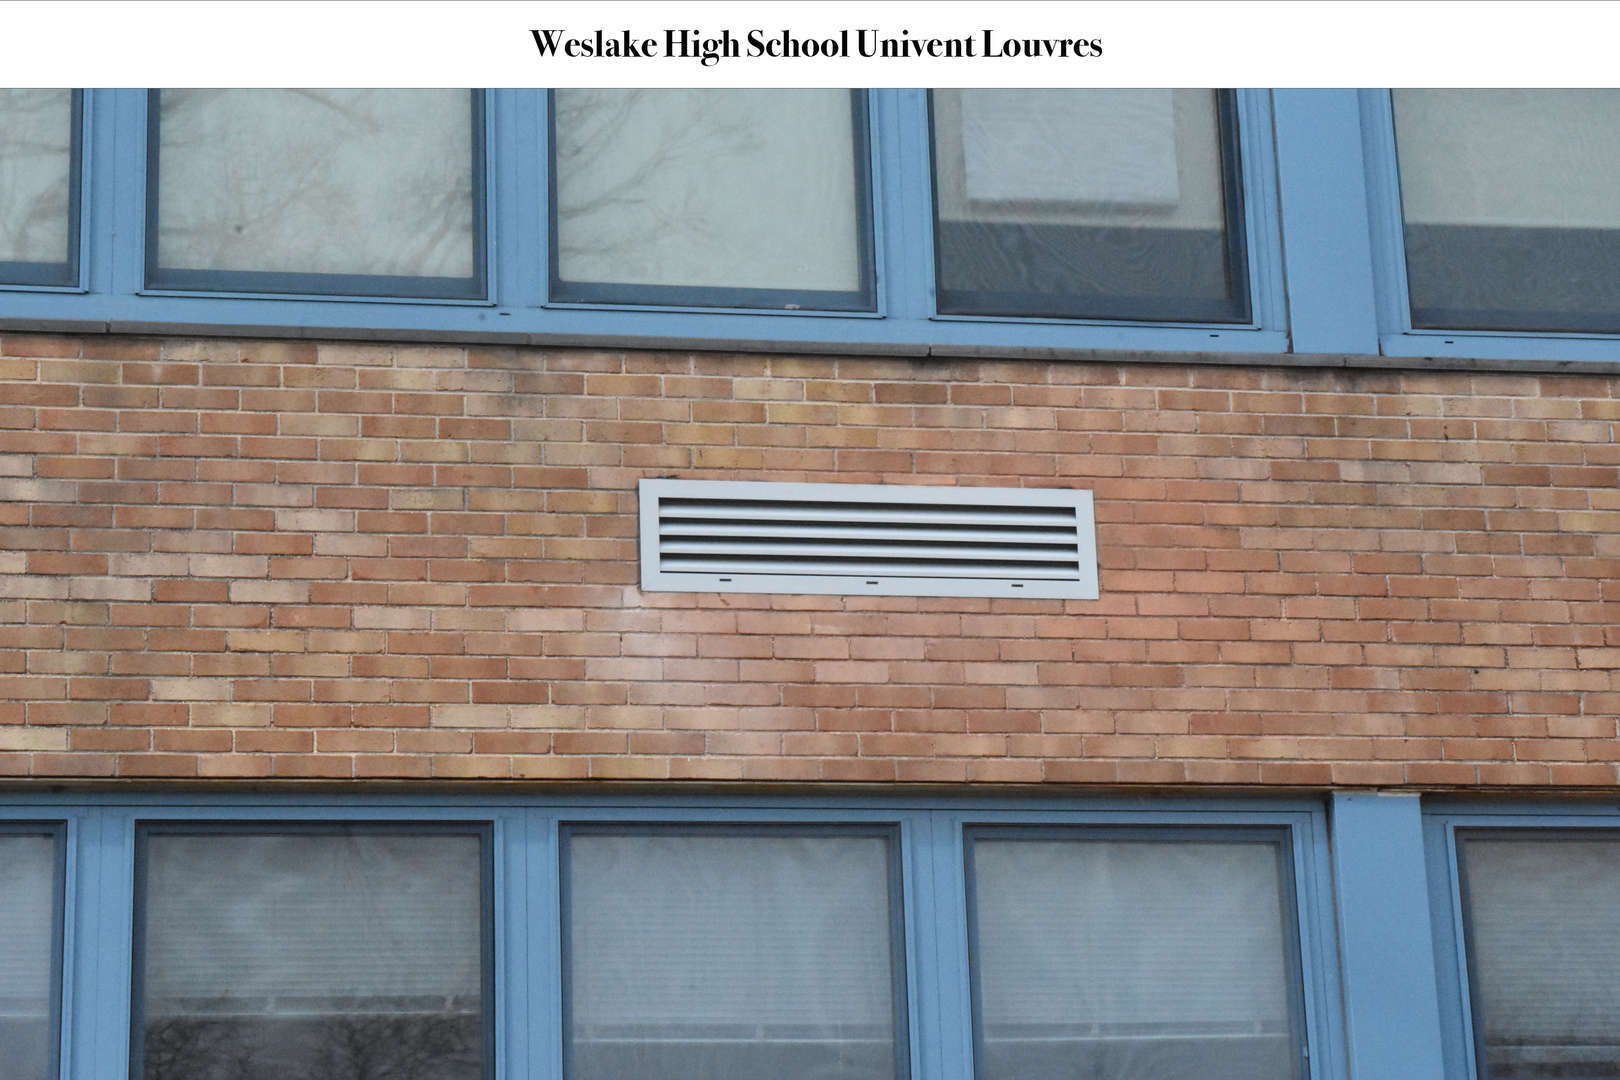 WHS Univent Louvres on outside of school